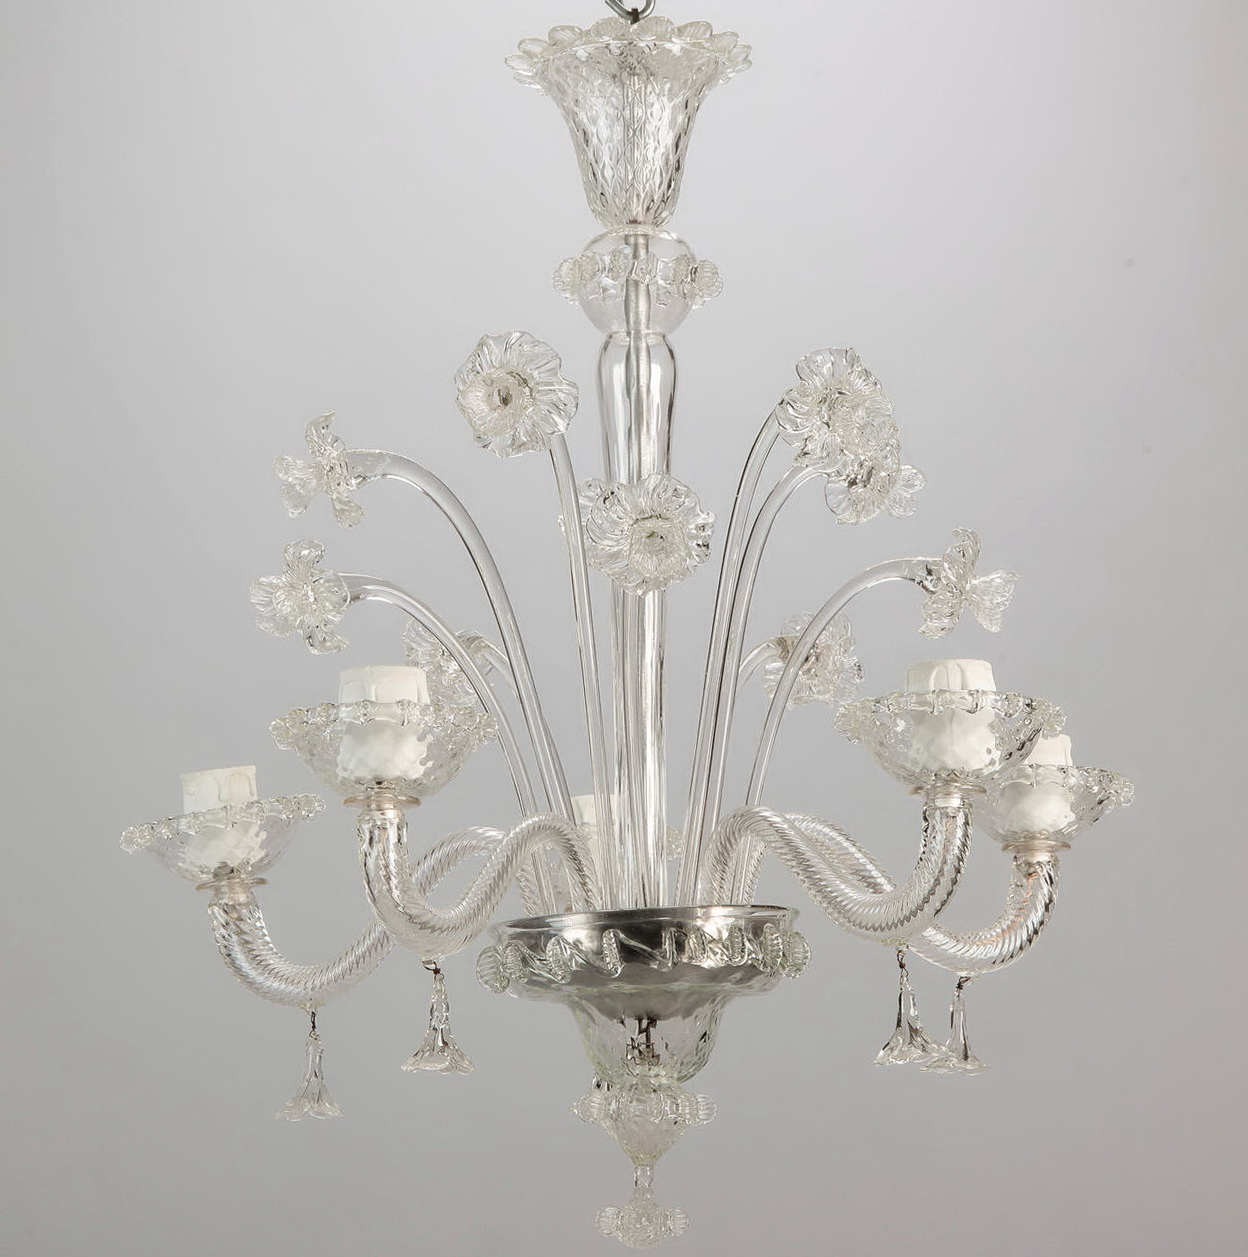 Venetian Glass Chandelier Lighting